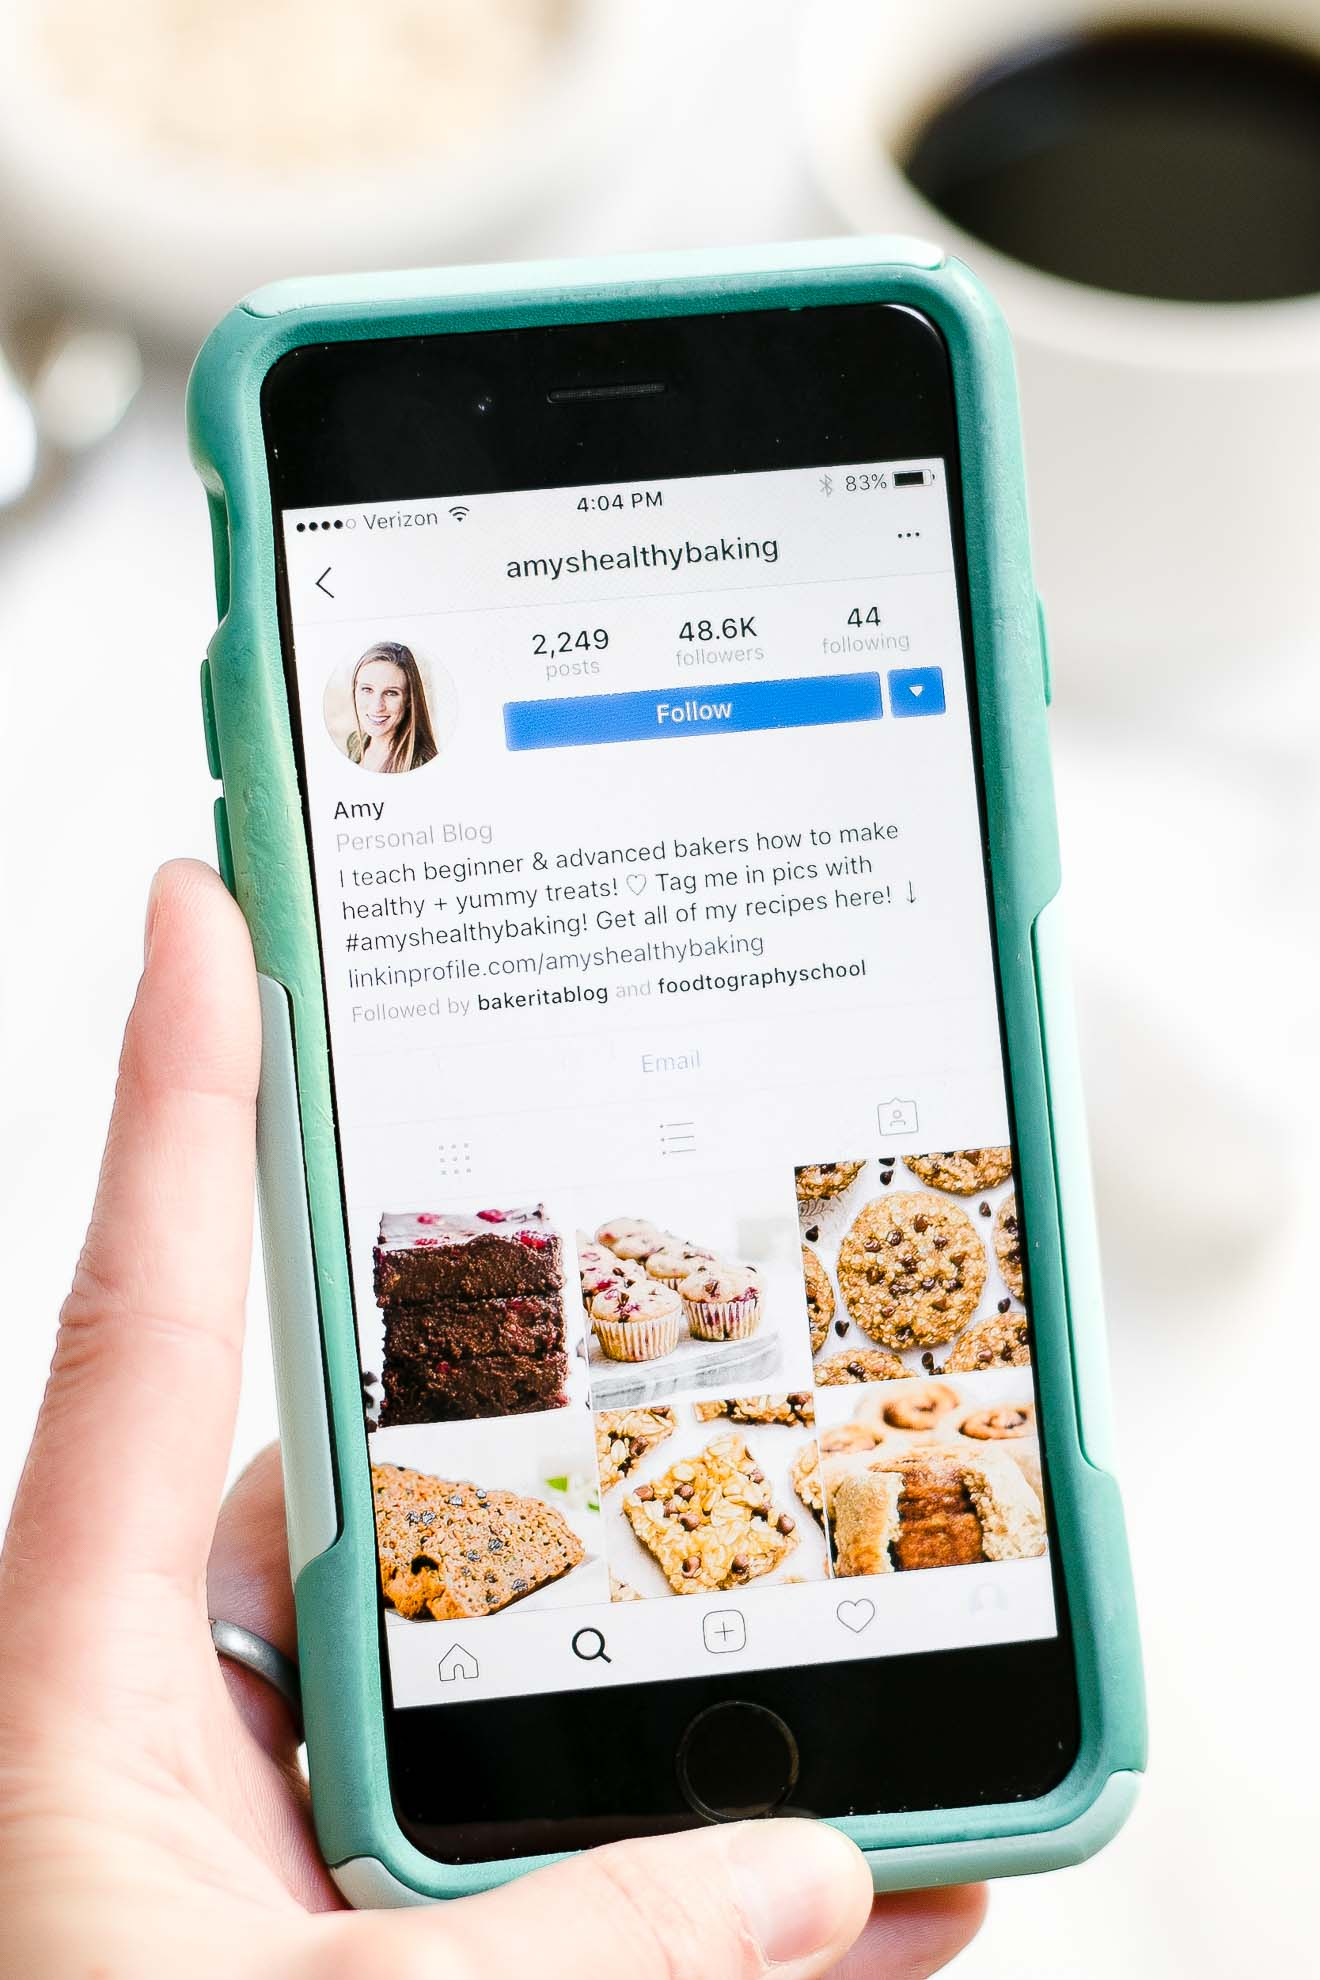 amy's healthy baking instagram account with over 48,600 followers